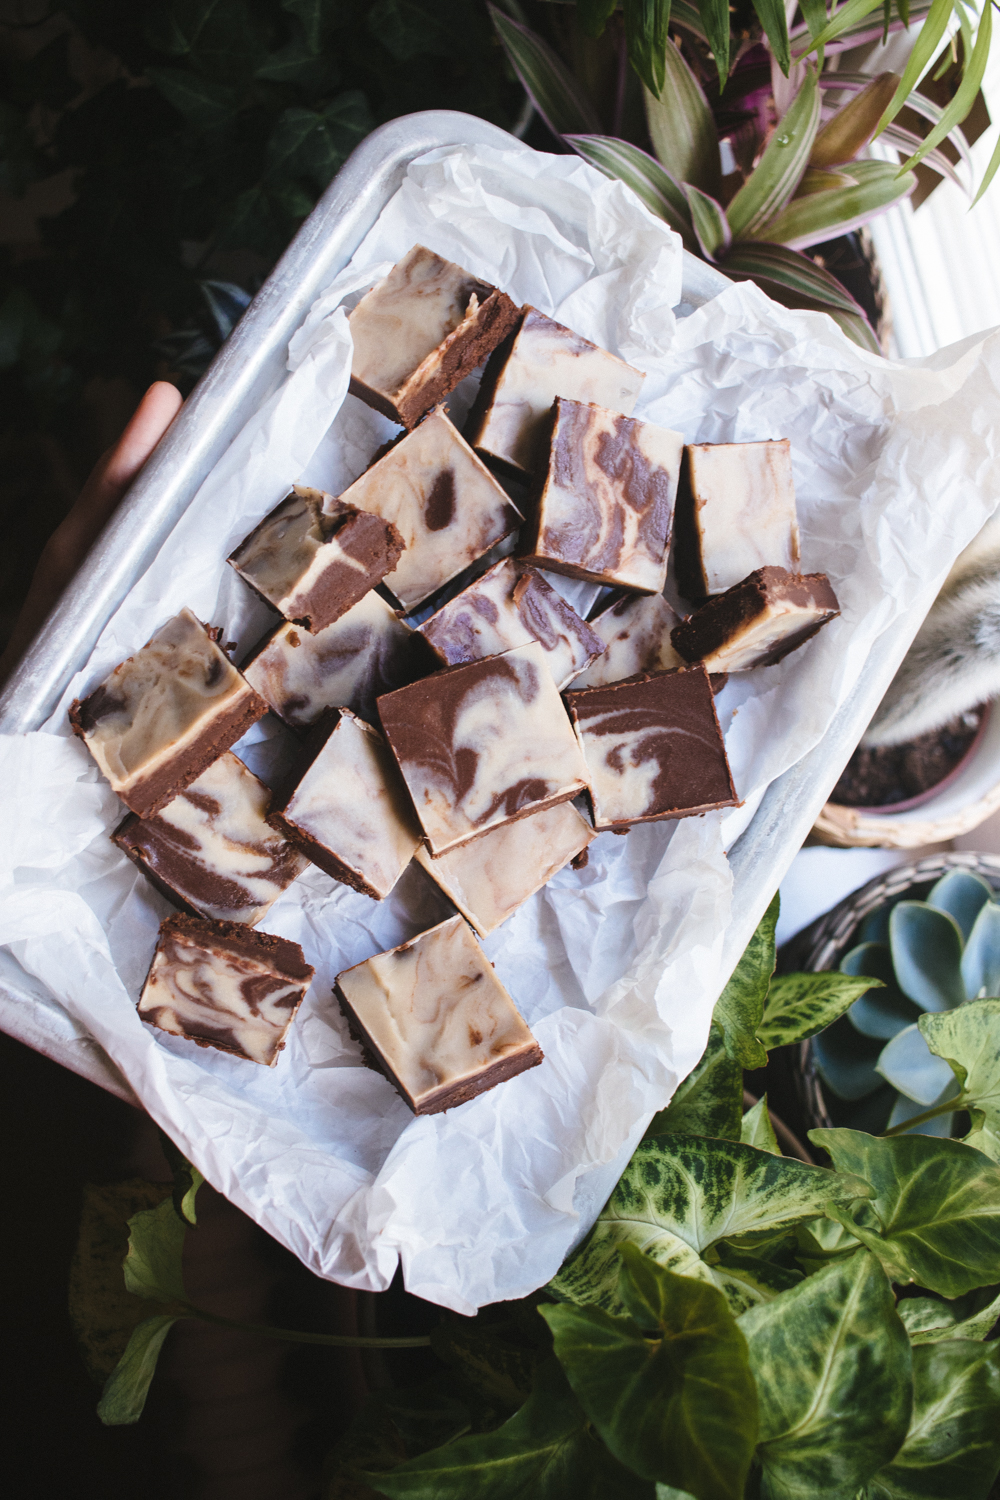 Vegan Chocolate & Dulce de Leche Fudge